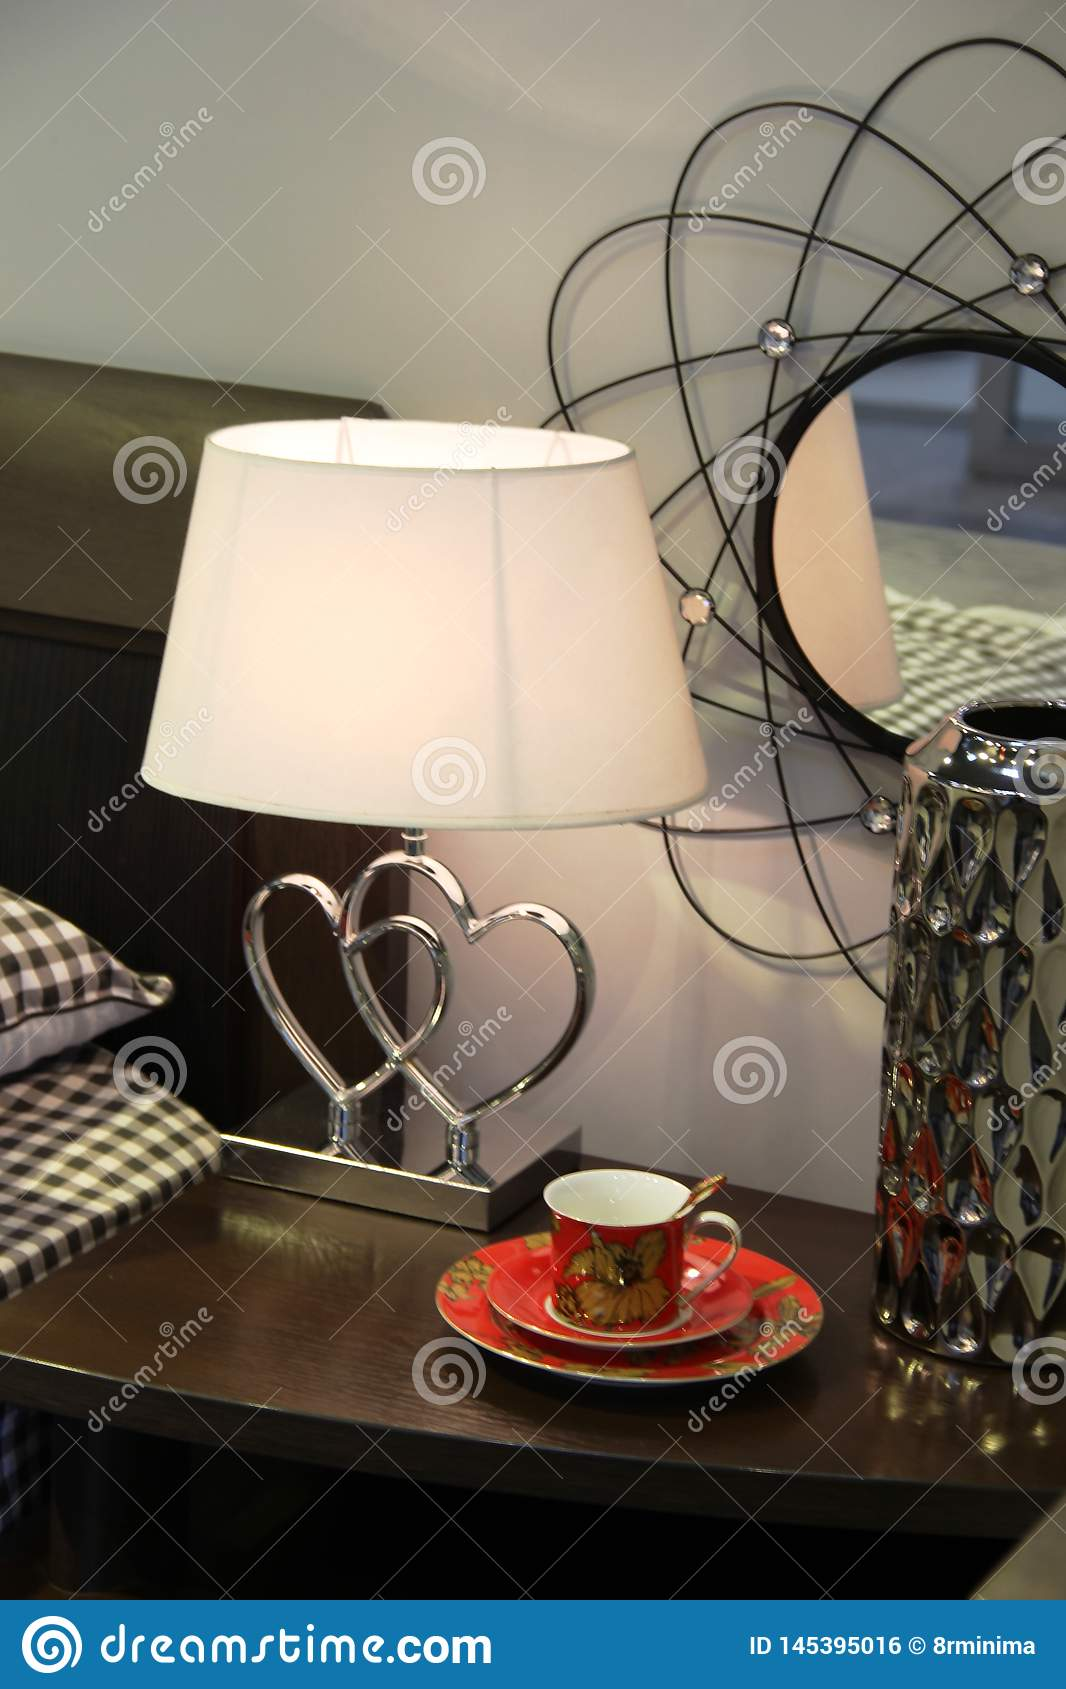 Decorative design of the bedside table area in the sales area of the furniture store